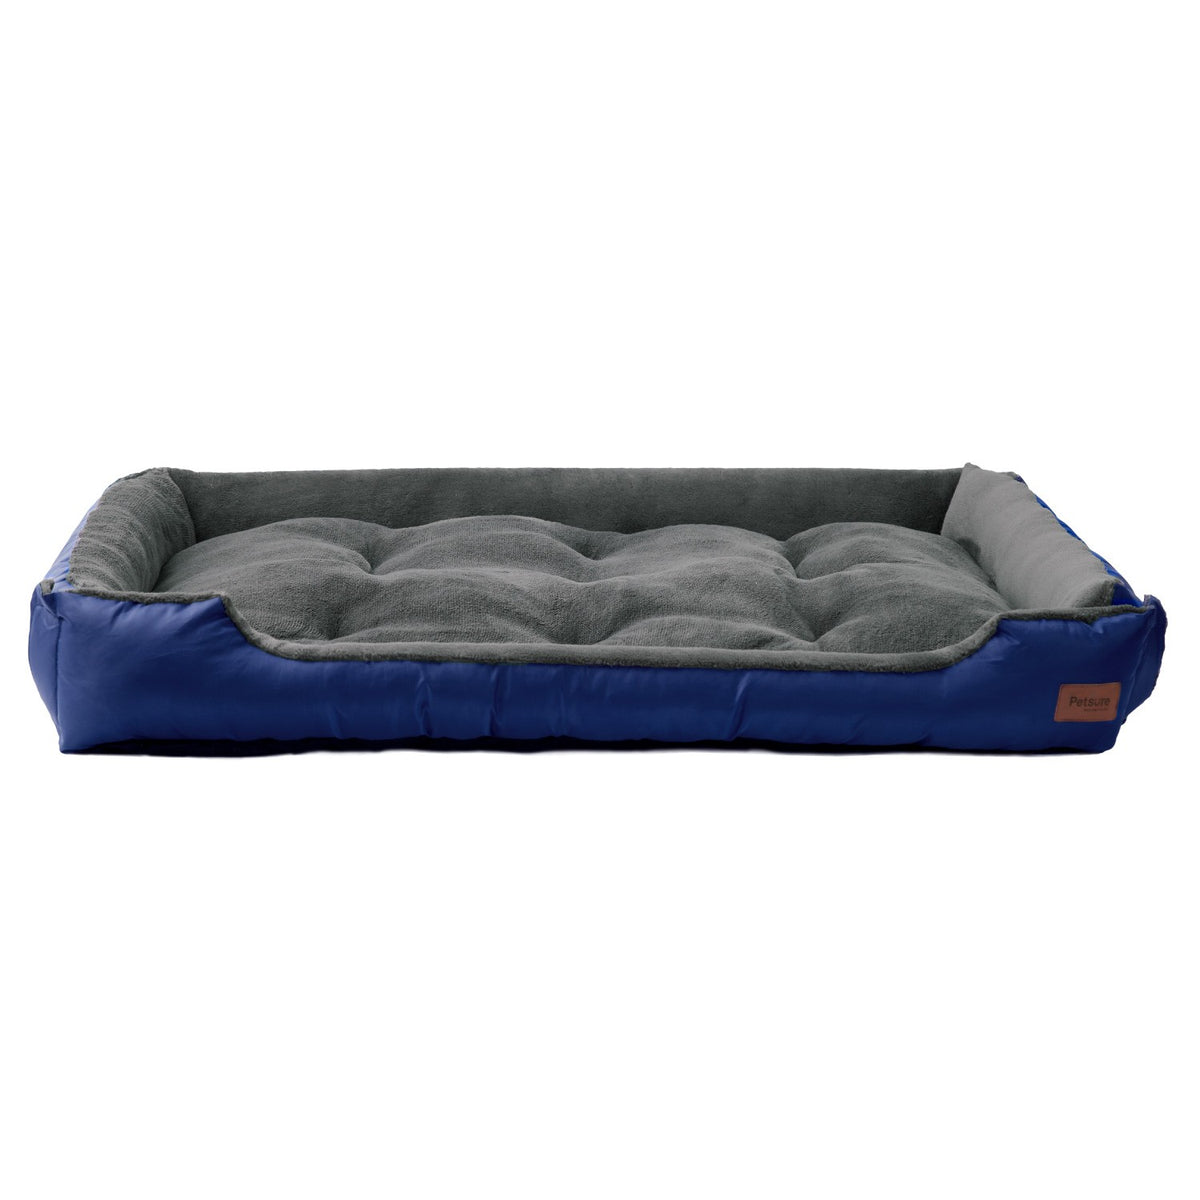 Extra Large Washable Dog Bed For Small Medium Large Dogs Pet Bedding G 829 Boutique